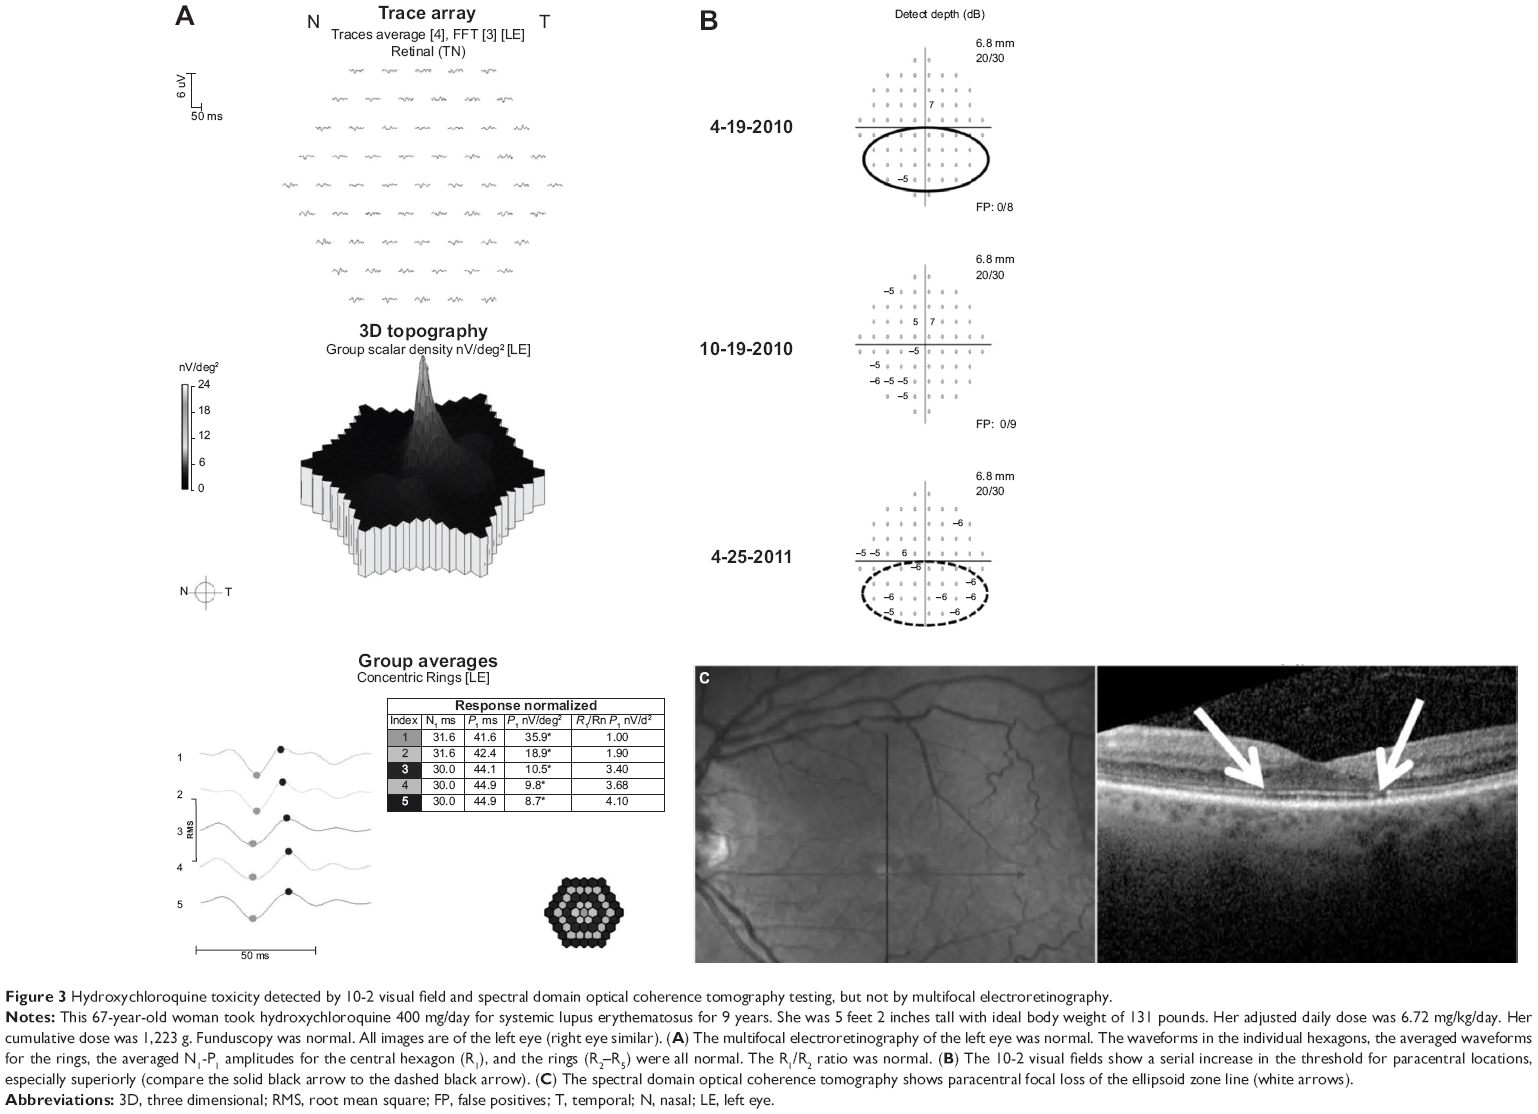 Full Text Relative Sensitivity And Specificity Of 10 2 Visual Fields Multifocal